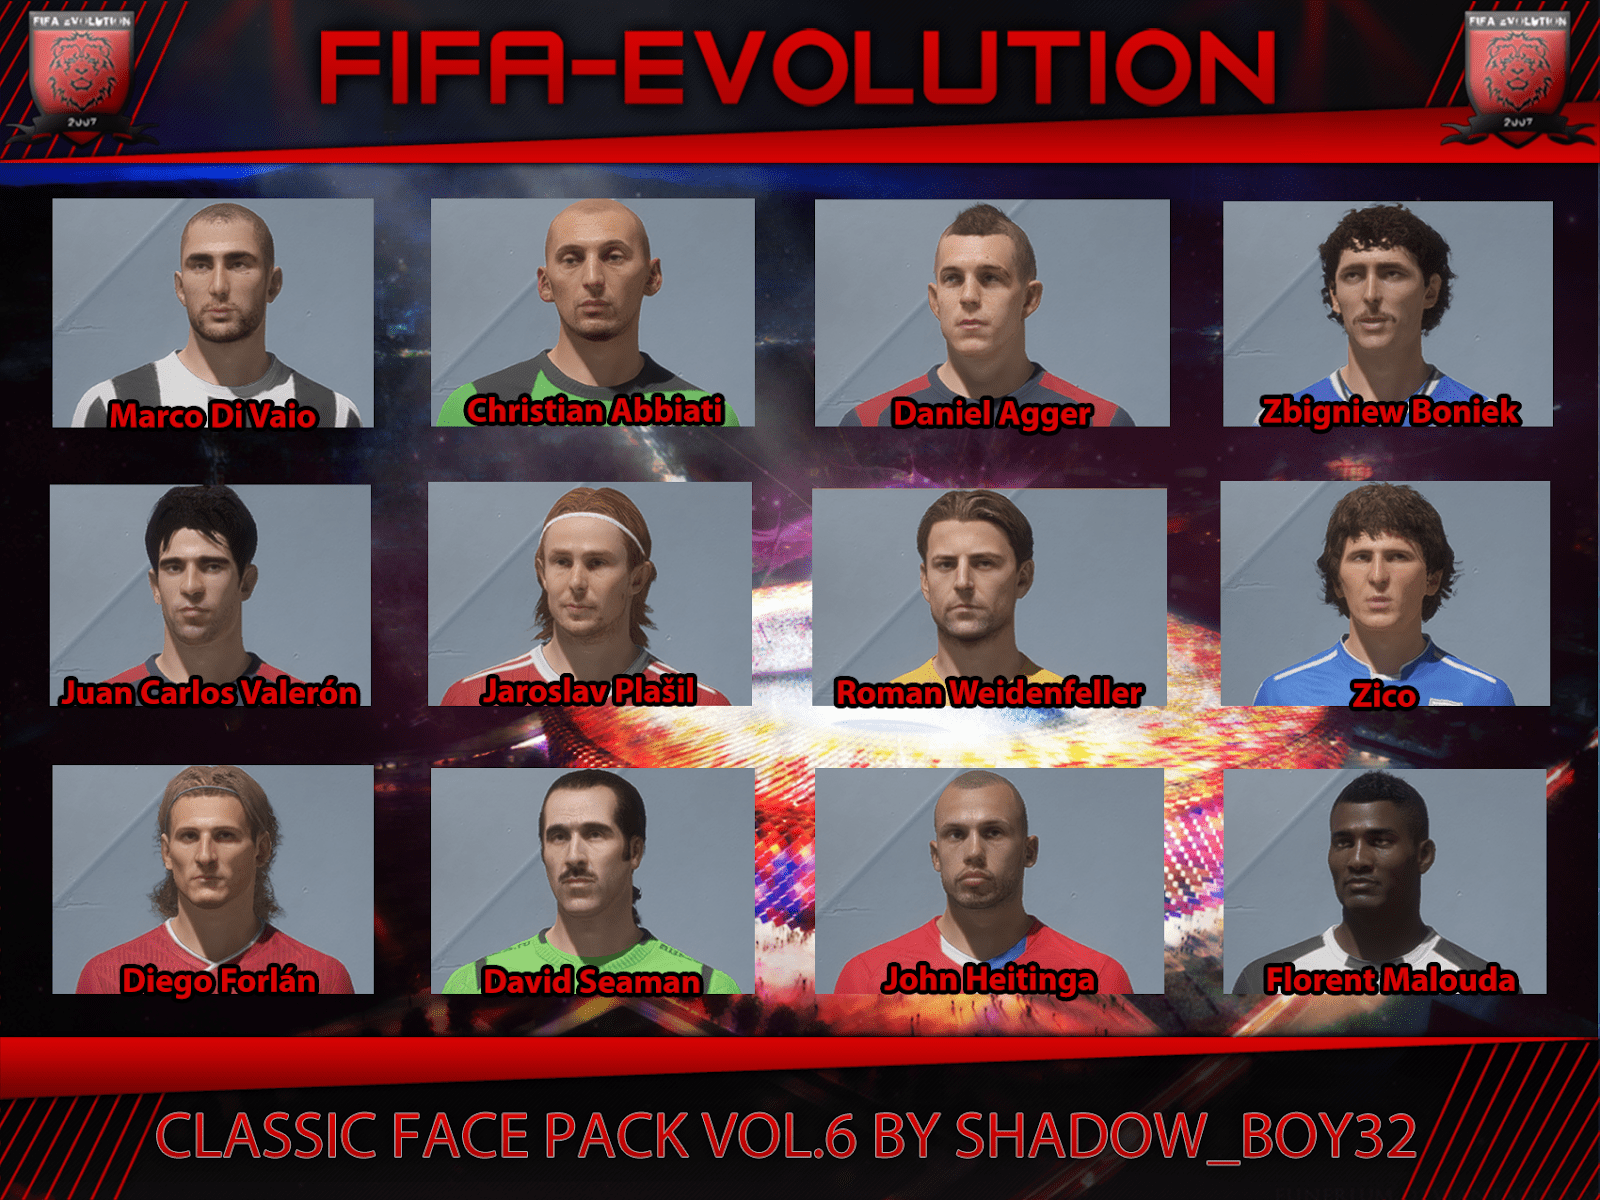 Classic converted face pack vol. 6